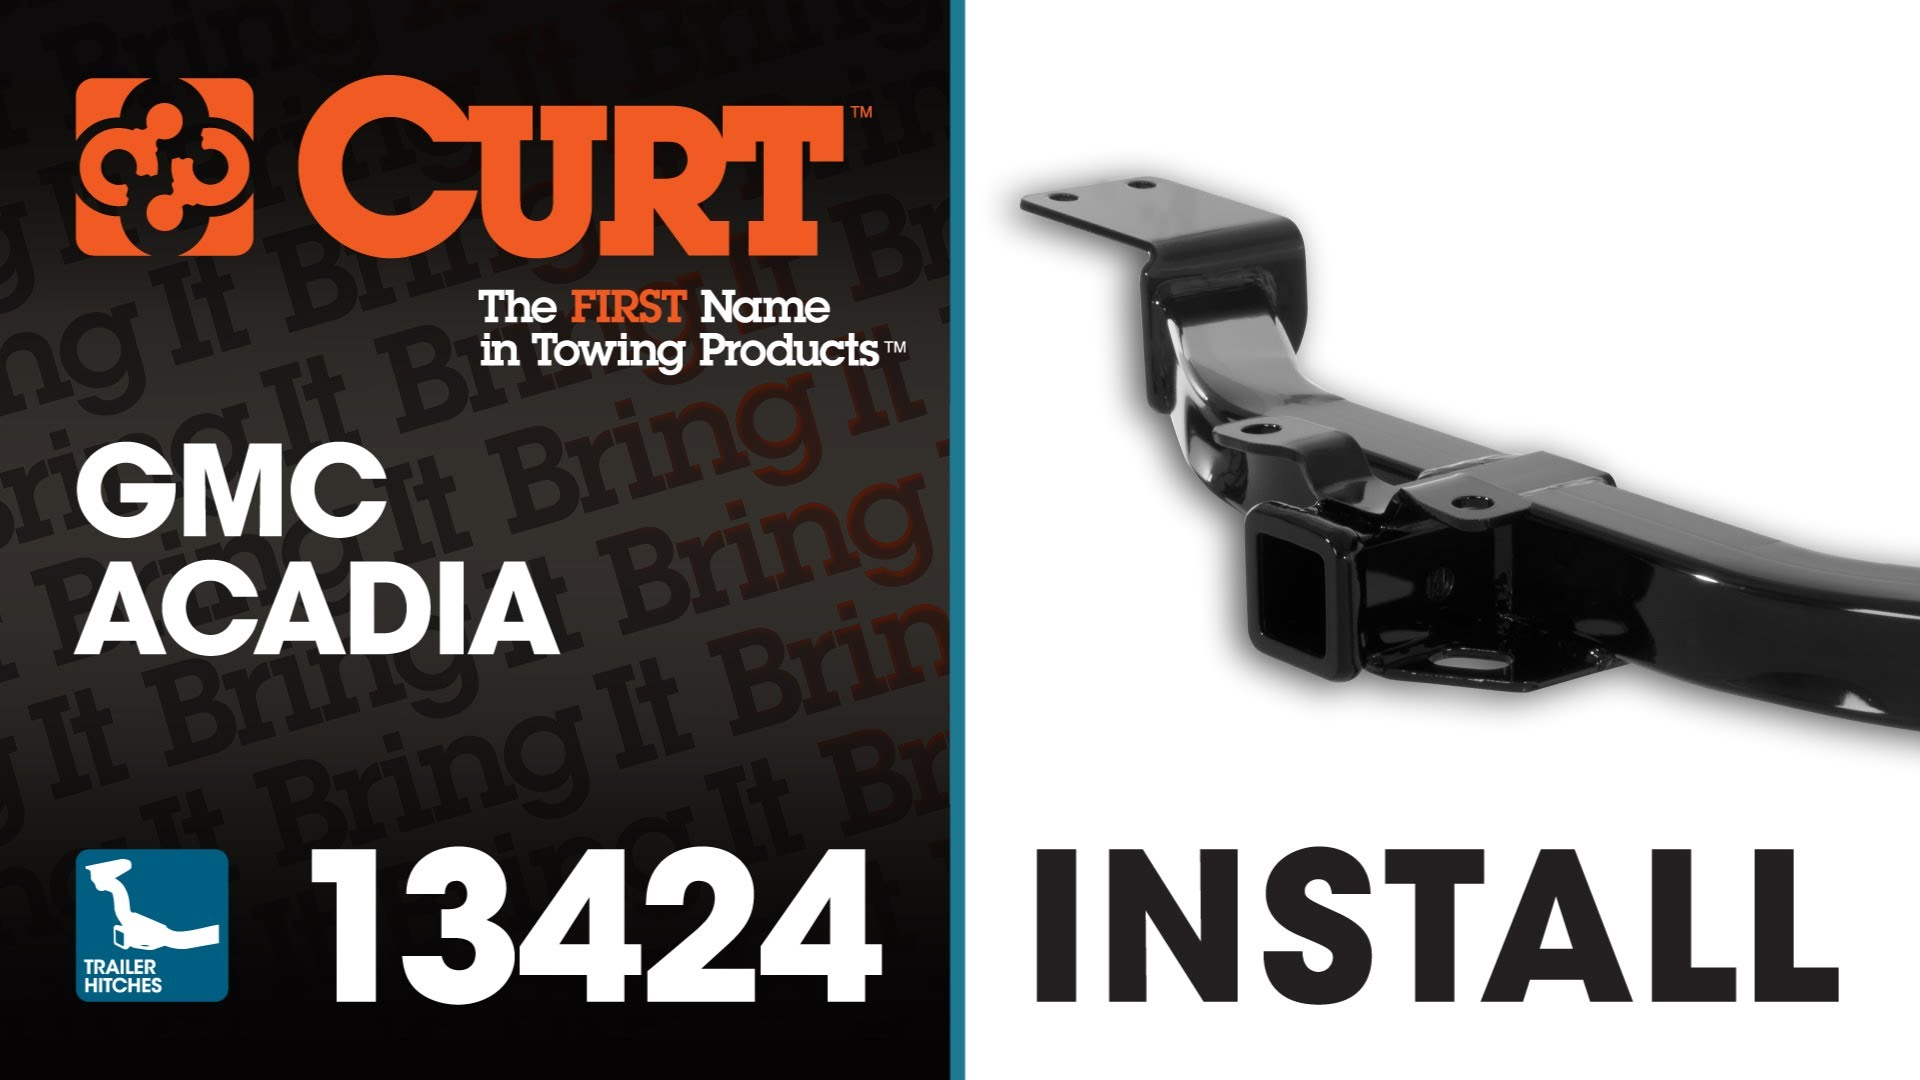 Trailer Hitch Install: CURT 13424 on GMC Acadia